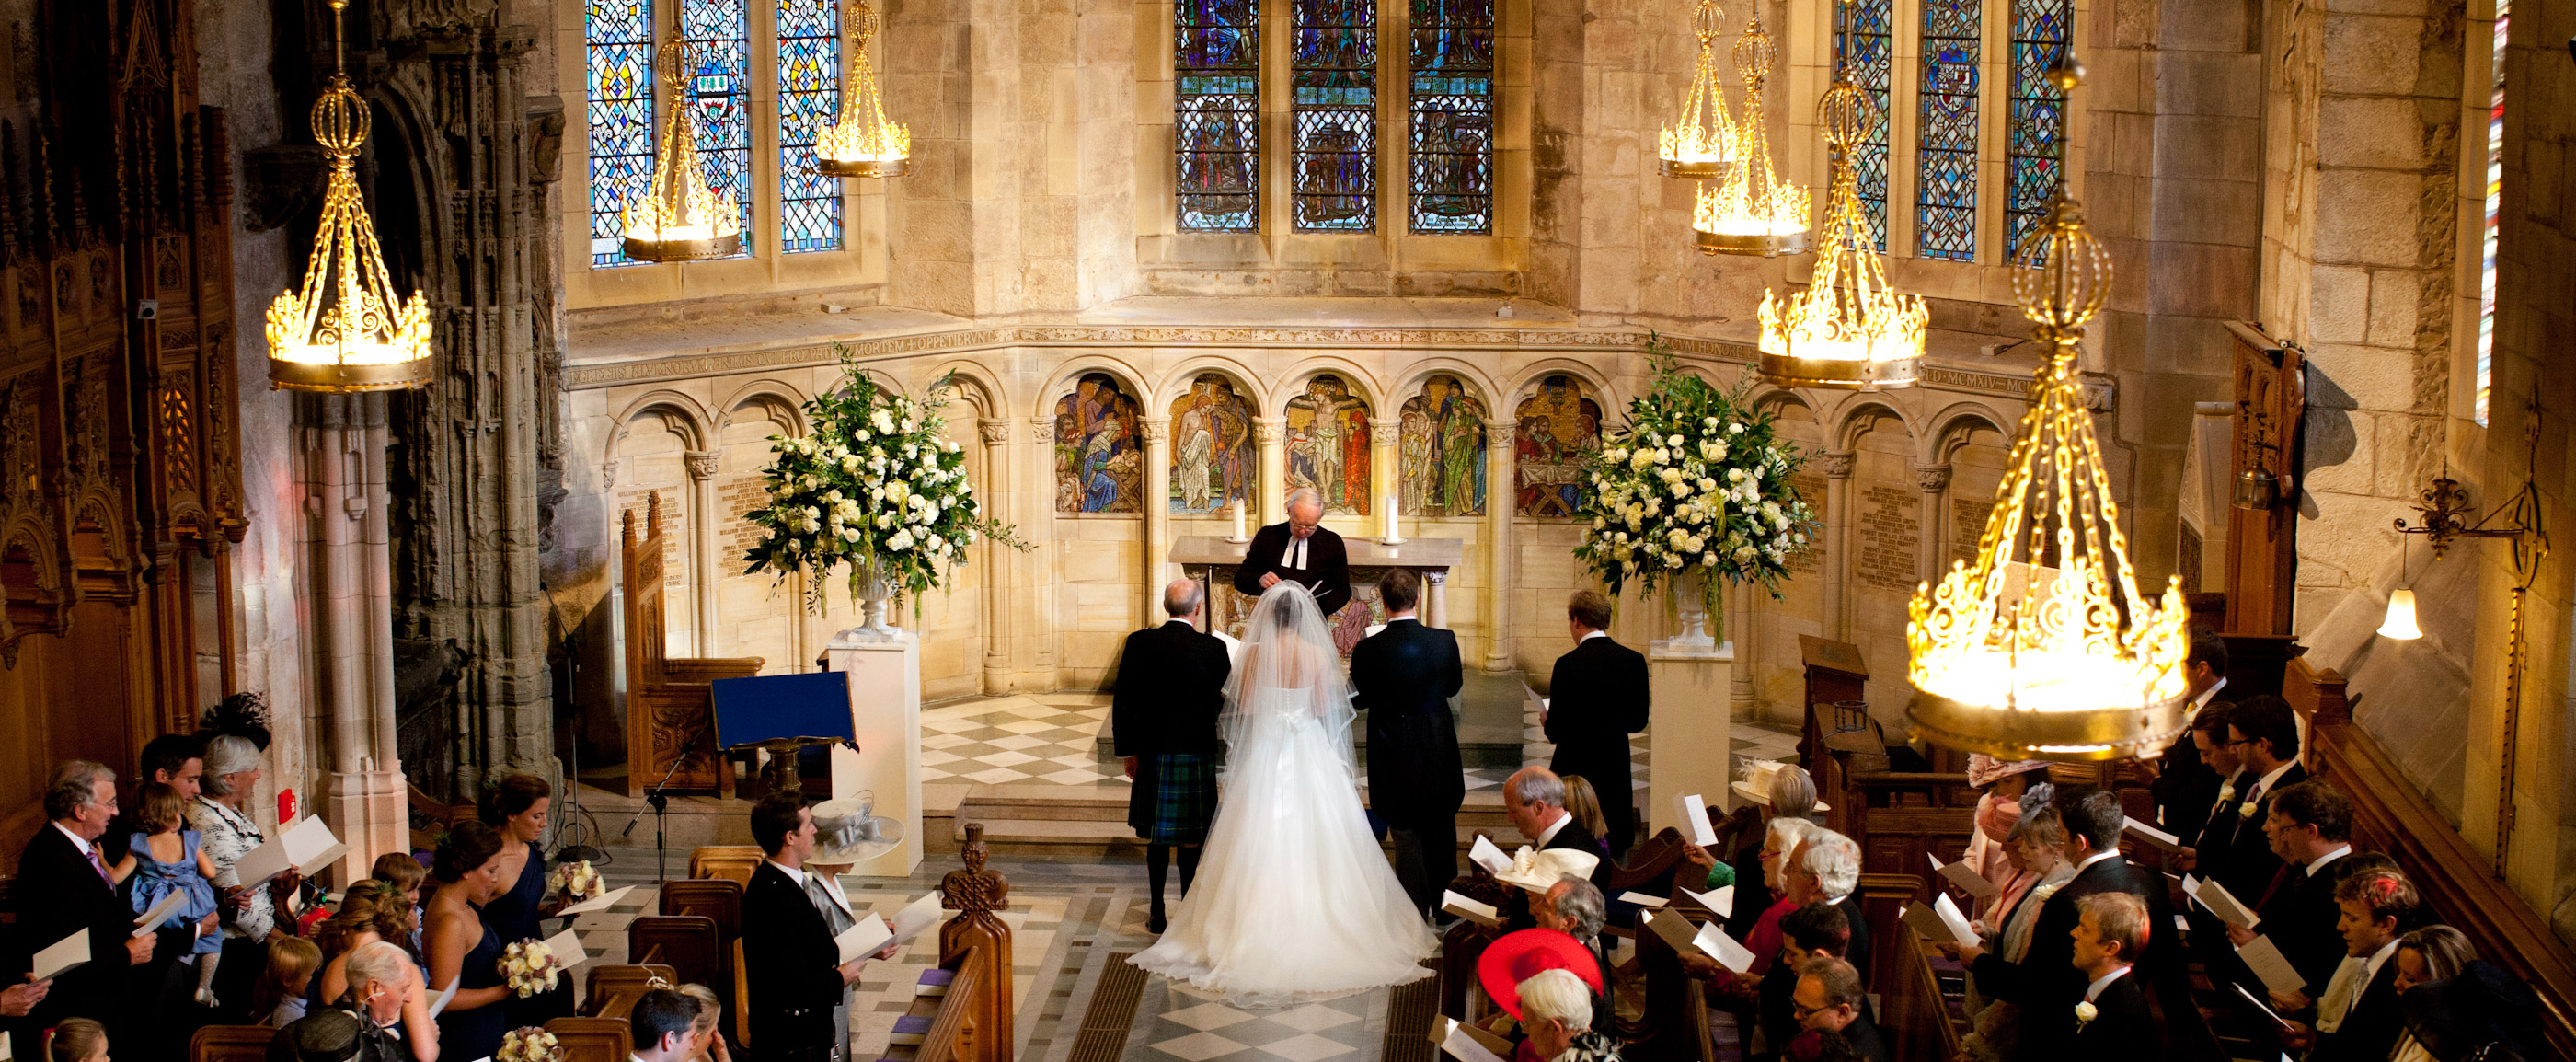 Litu legal requirements for scottish weddings and getting married here photo of a wedding ceremony taking place in a scottish cathedral solutioingenieria Choice Image